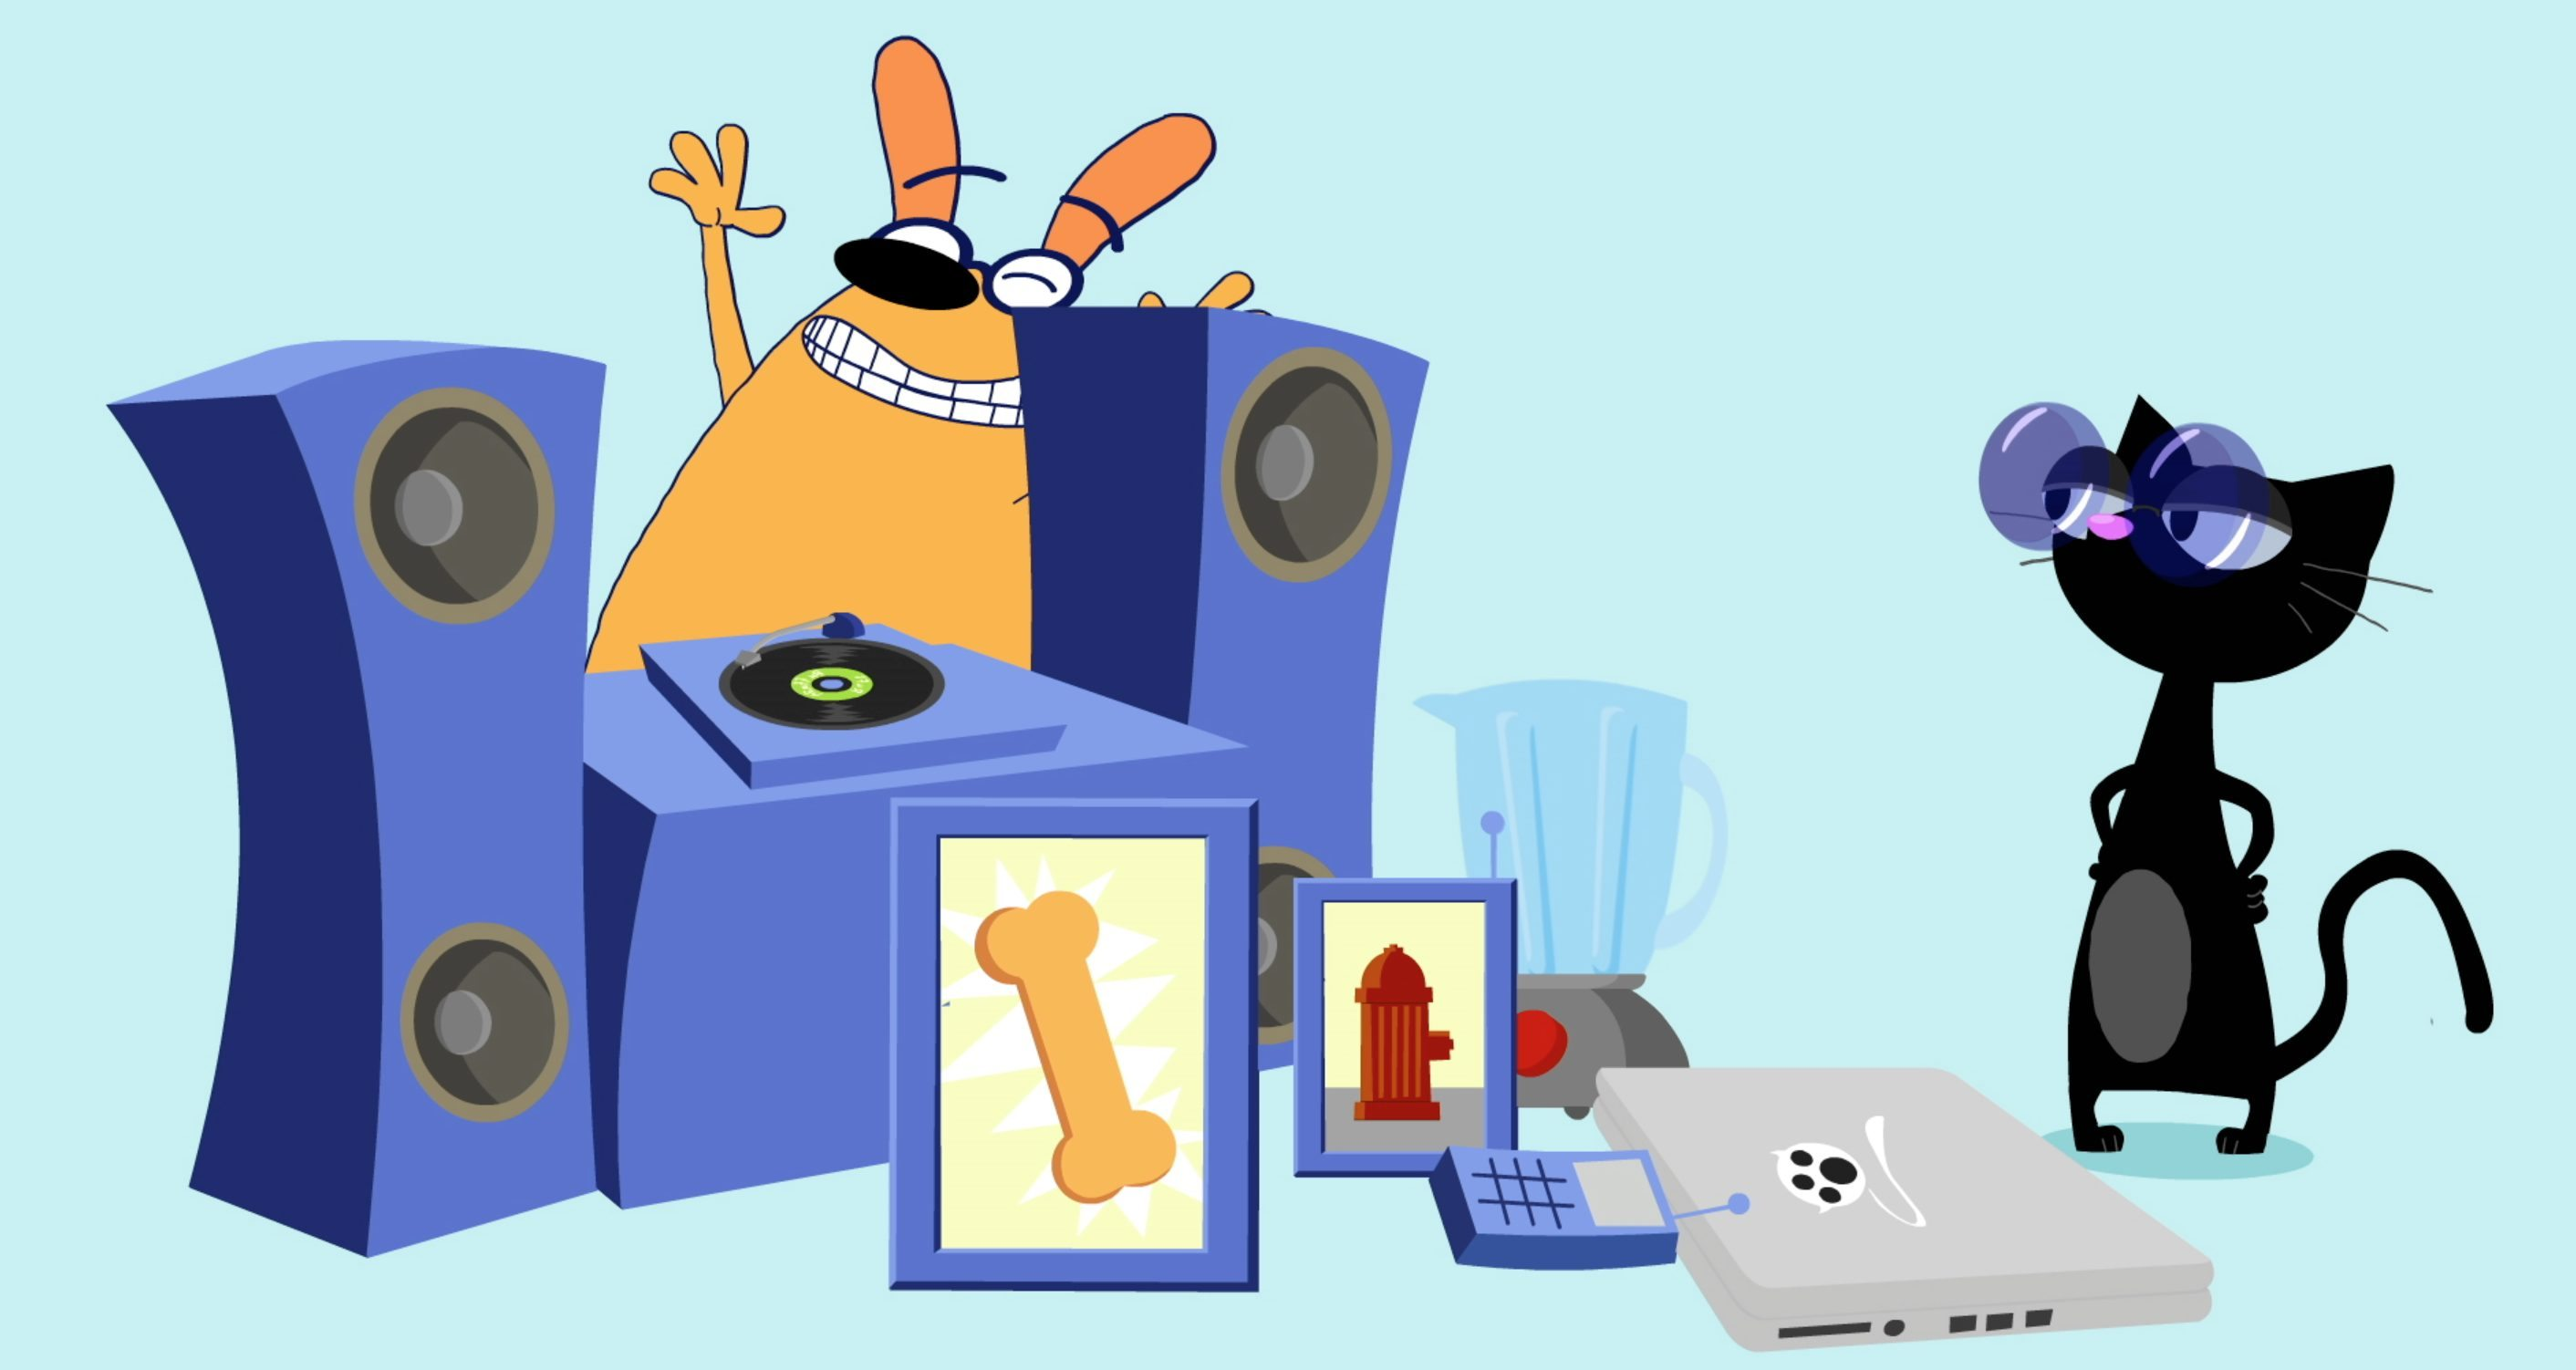 Ruff Ruffman and pile of gadgets. WGBH 2014